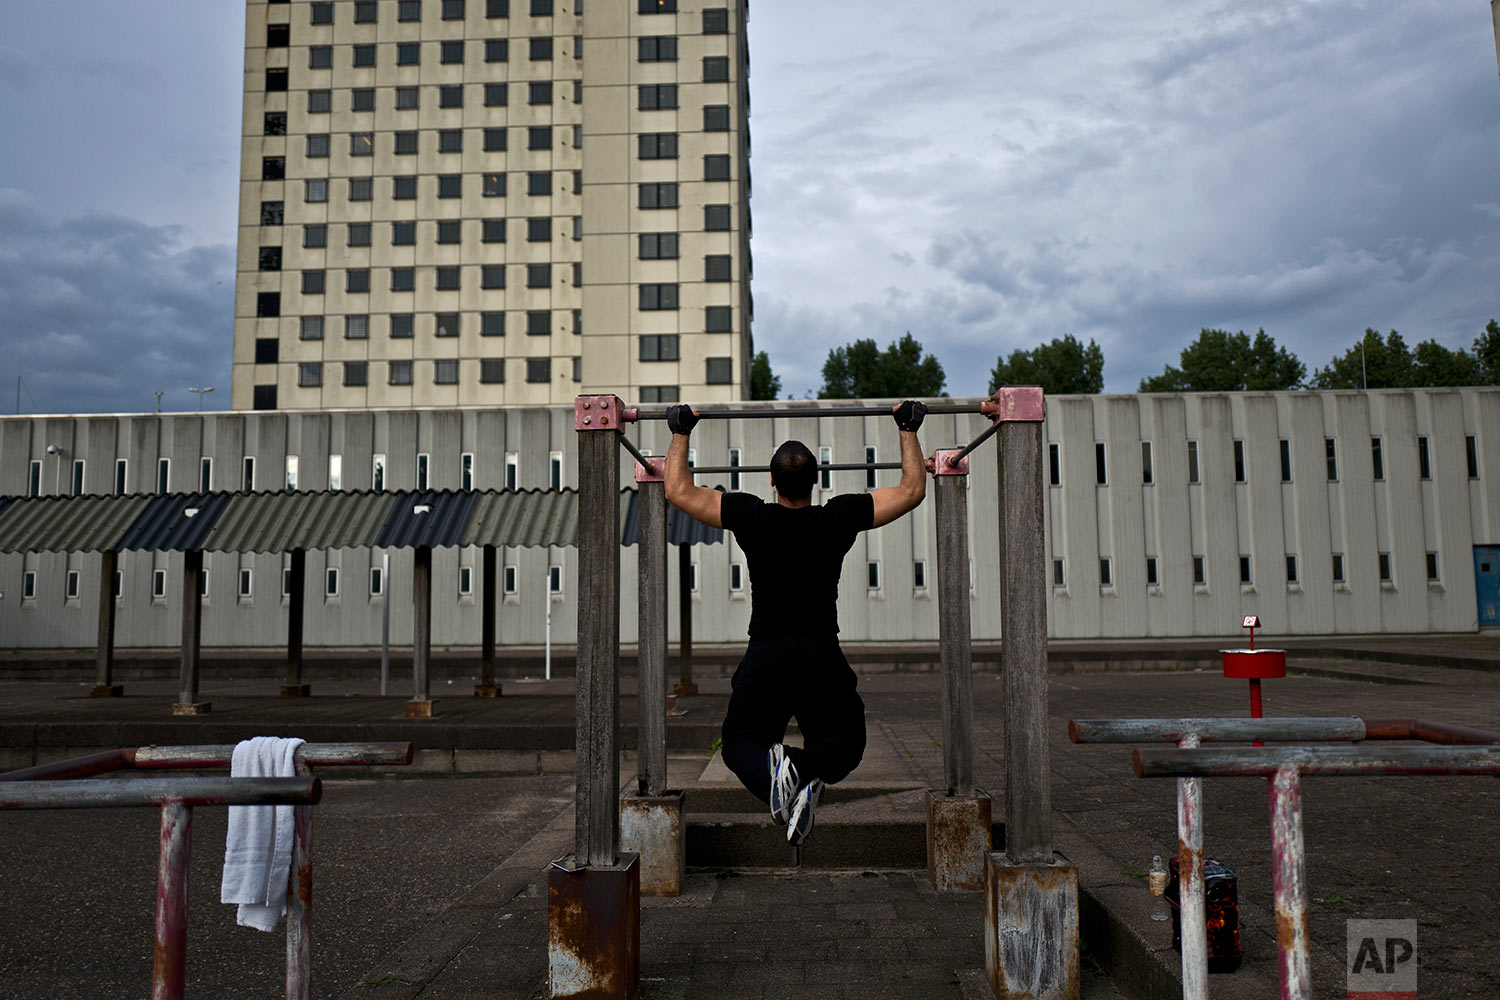 In this Saturday, July 22, 2017 photo, Afghan refugee Zafar Sahil, 22, exercises in a yard at the former prison of Bijlmerbajes in Amsterdam, Netherlands. (AP Photo/Muhammed Muheisen)